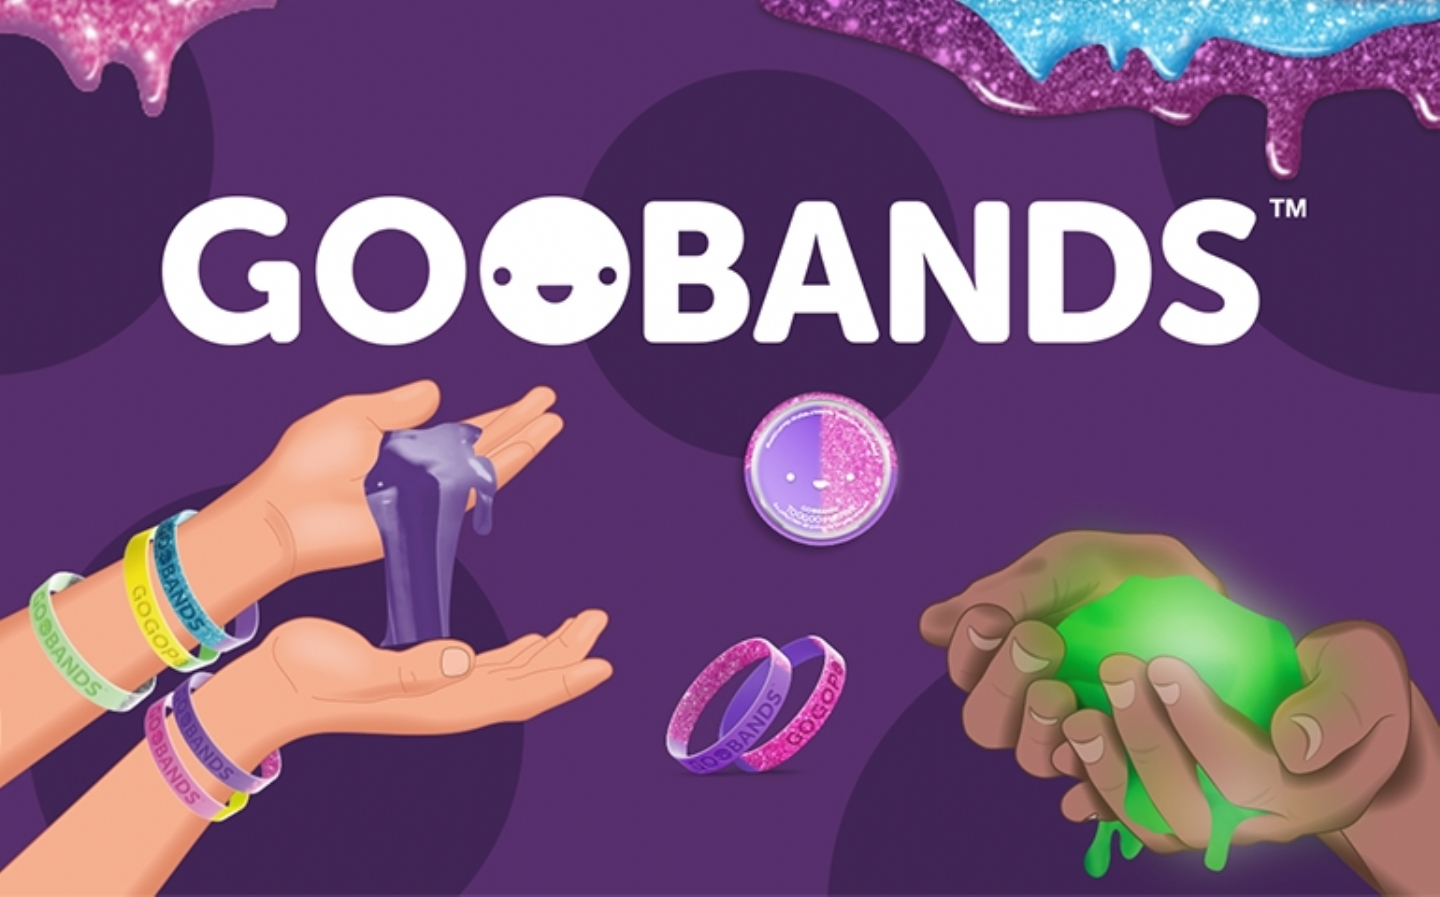 GOOBANDS slime & wristband collectibles!